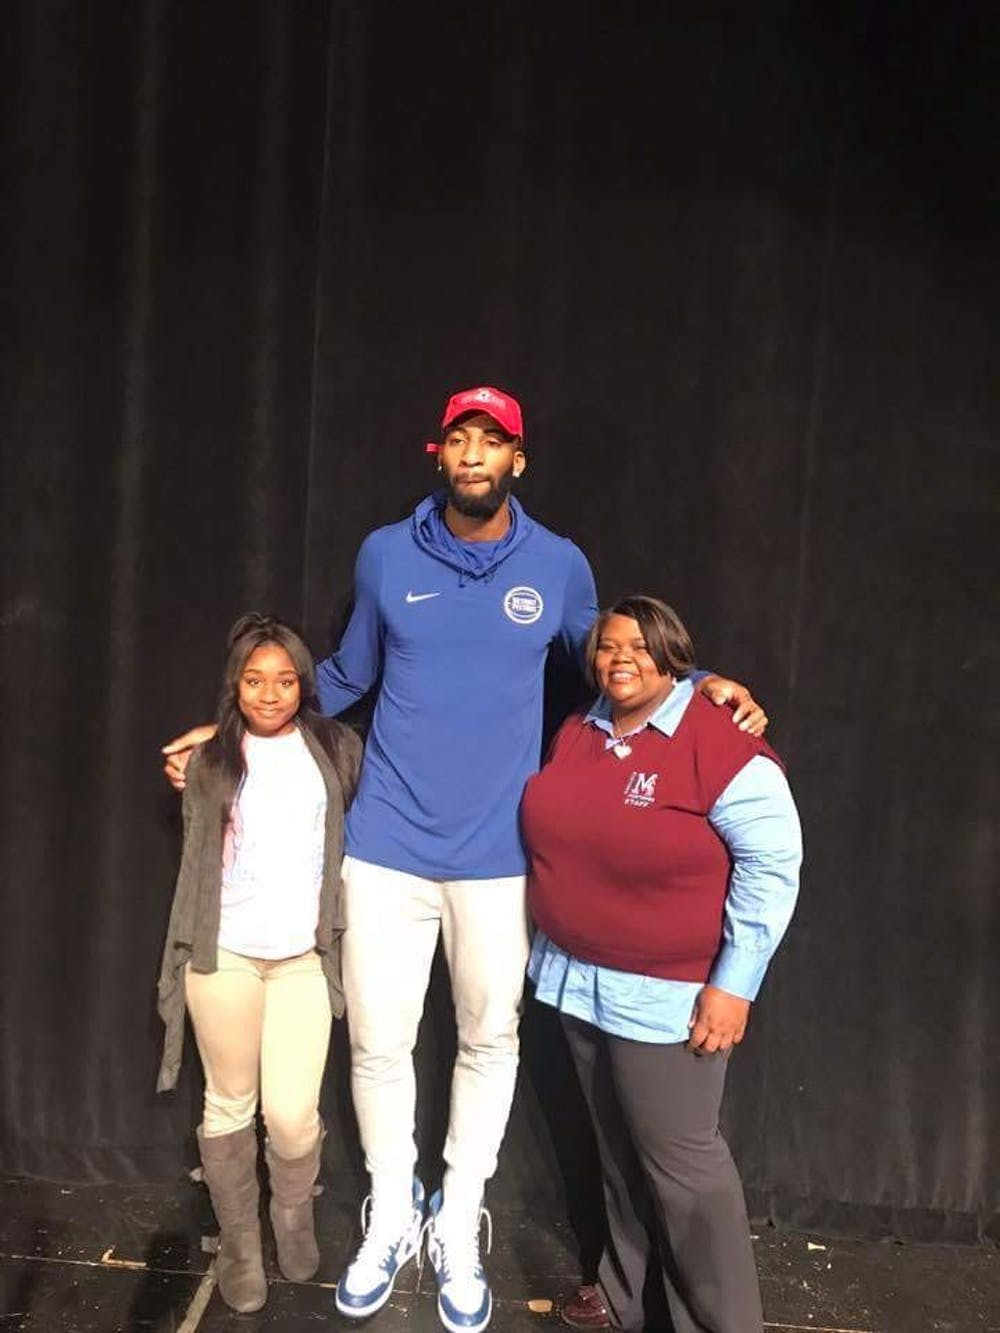 <p>(Staff Photo/Mustang Voice) Detroit Piston Andre Drummond poses with senior Ebony Norwood and Mumford H.S. Principal Angela Prince on Oct. 24&nbsp;after awarding the school with prizes for a winning video produced by Norwood.&nbsp;</p>